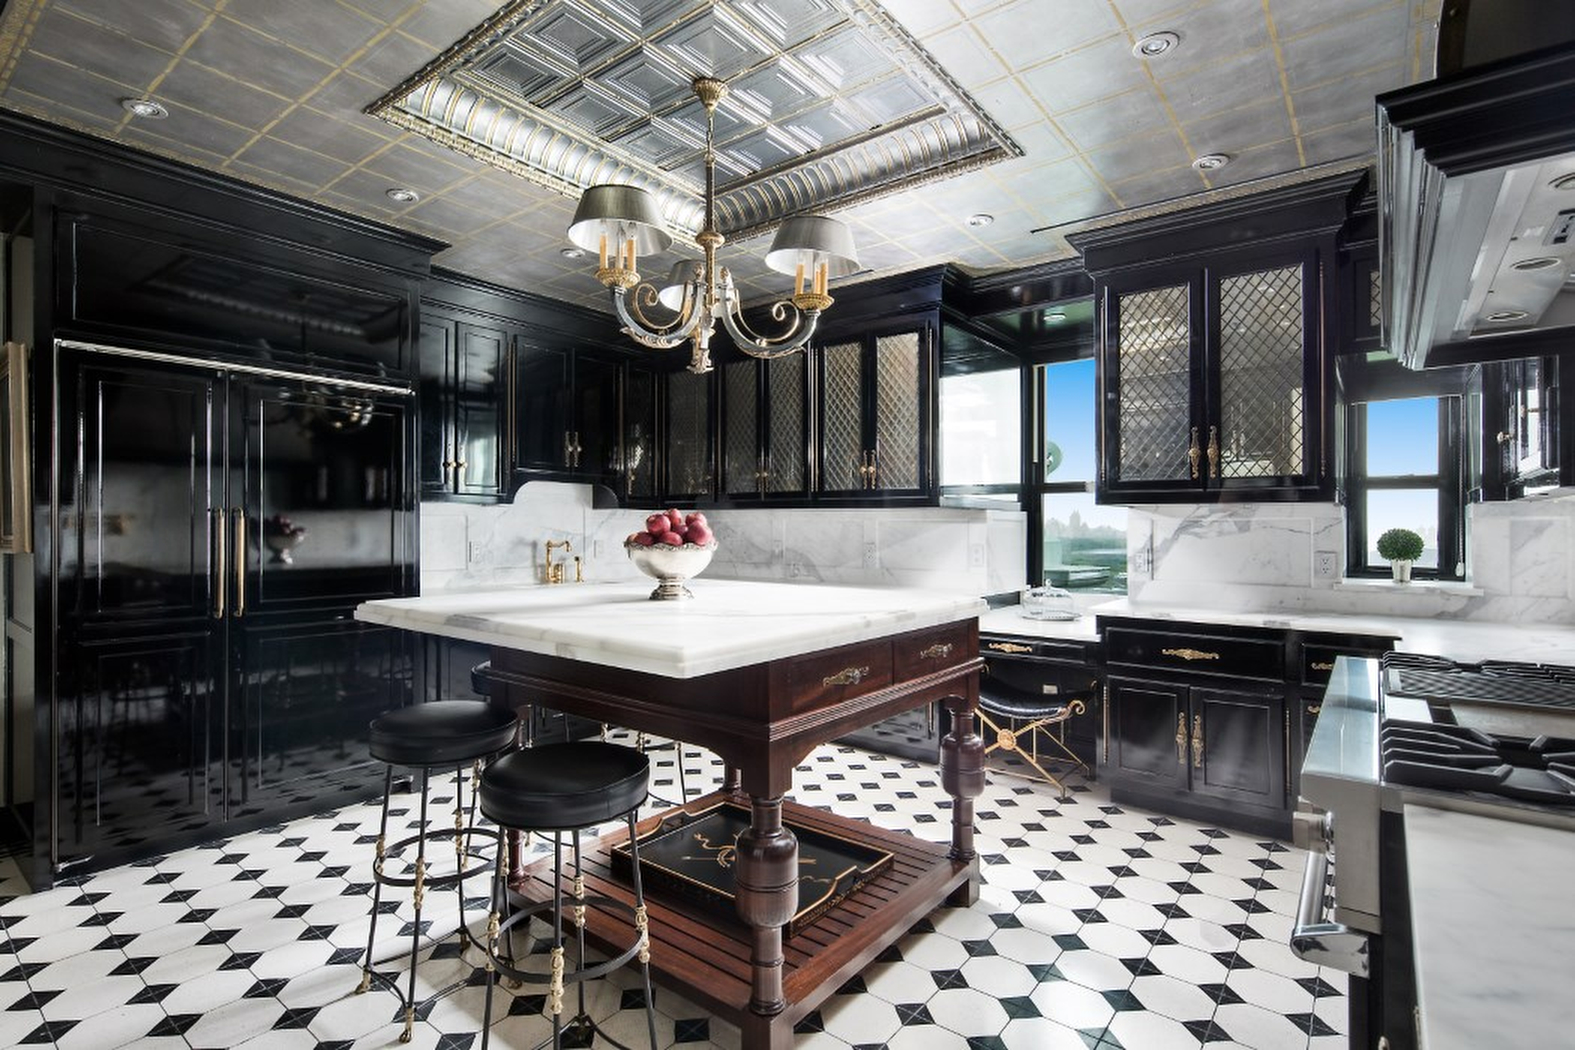 "Fashion designer Tommy Hilfiger has finally sold his extravagant New York-based penthouse apartment after knocking nearly FIFTY million dollars off the asking price!  The four-bedroom home has reportedly sold for a reported .35 million. It originally went up for sale for a staggering  million.  Insiders claim the home's exquisite furniture is also be included in the deal.  Hilfiger bought the corner duplex for .5 million in 2008, and then tried to flip it for  million a few months later.  The designer and his wife Dee Ocleepo then spent around  million on renovations. In 2013, the 6,050-square-foot home went back on the market for an eye-popping  million.  The price dropped to  million in March 2015 and then  million before dropping to .9 million in April 2016. It was then reduced to  million in September 2017 At one point, real estate insiders claim the apartment was ""unsellable.""  The art-filled corner penthouse features Central Park and Fifth Avenue views and 10- to 35-foot ceiling heights.  The upper level, reached by a spiral staircase, includes a decorative fireplace in the master suite and a terrace that overlooks the park.   The chef's kitchen sports sleek black cabinetry, an office/library space is also clad in black and the three additional bedrooms come decked out, in part, with nautical and rock n' roll themes.  It features marble-clad rooms, vintage limestone fireplaces from England and a domed room that features a custom-designed ""Elouise"" mural designed by the children book's illustrator Hilary Knight.  The couple decided to sell up as they are rarely in the New York because they spend most of their time in estate in Greenwich, Connecticut., Image: 473677533, License: Rights-managed, Restrictions: , Model Release: no, Credit line: IMP Features / IMP Features / Profimedia"